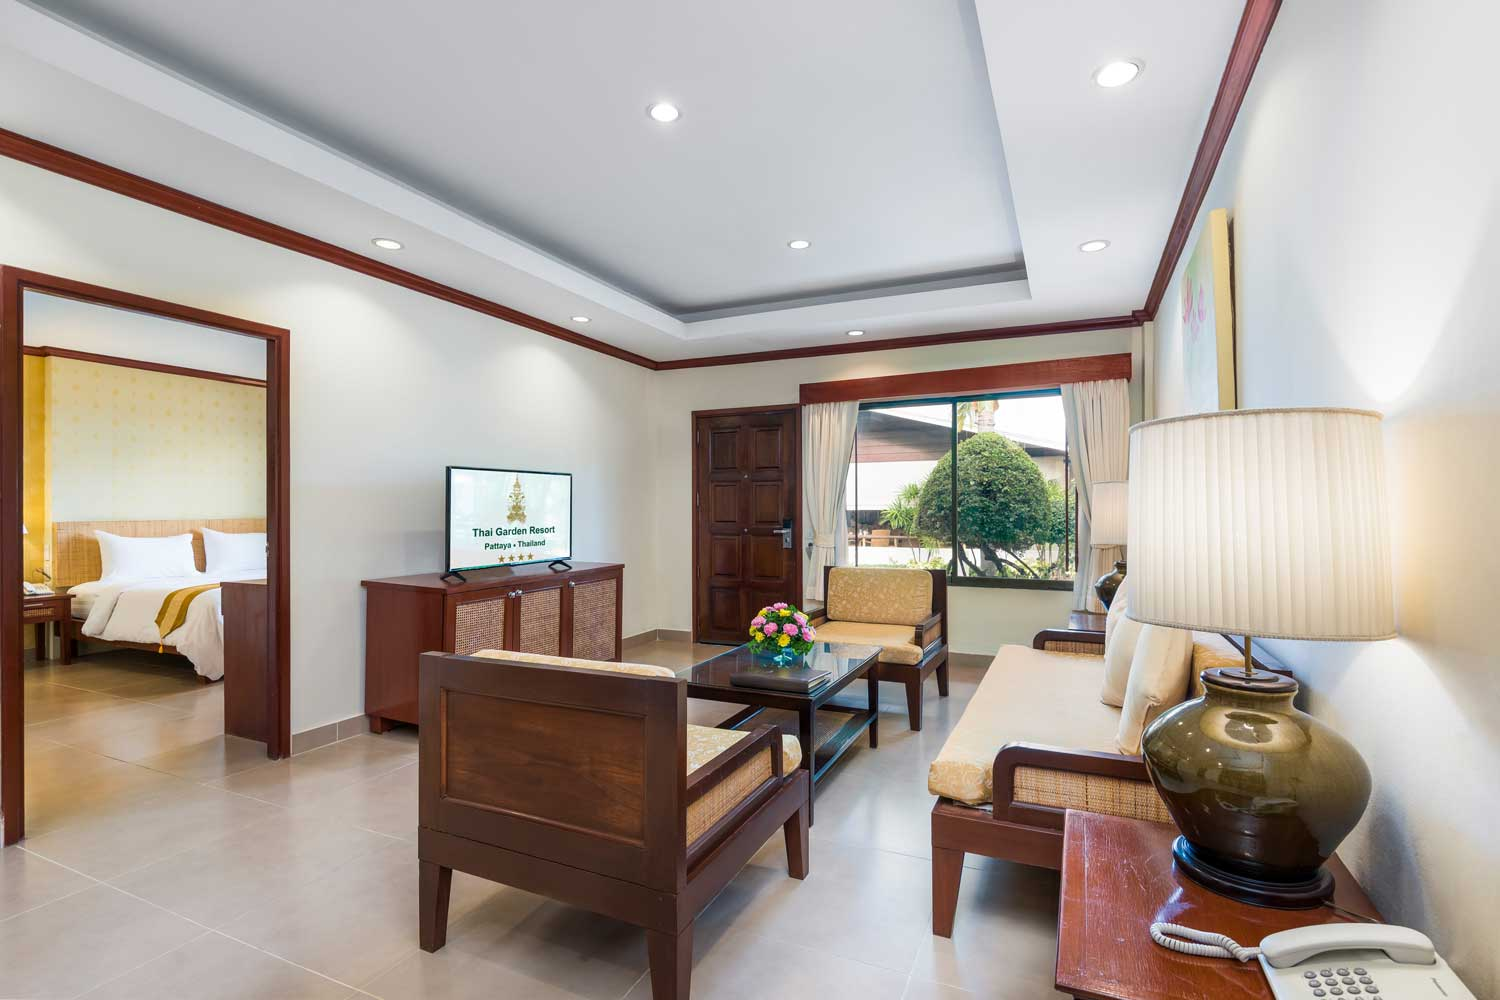 The living room of a disabled deluxe apartment hotel room of the Thai Garden Resort in Pattaya, Thailand